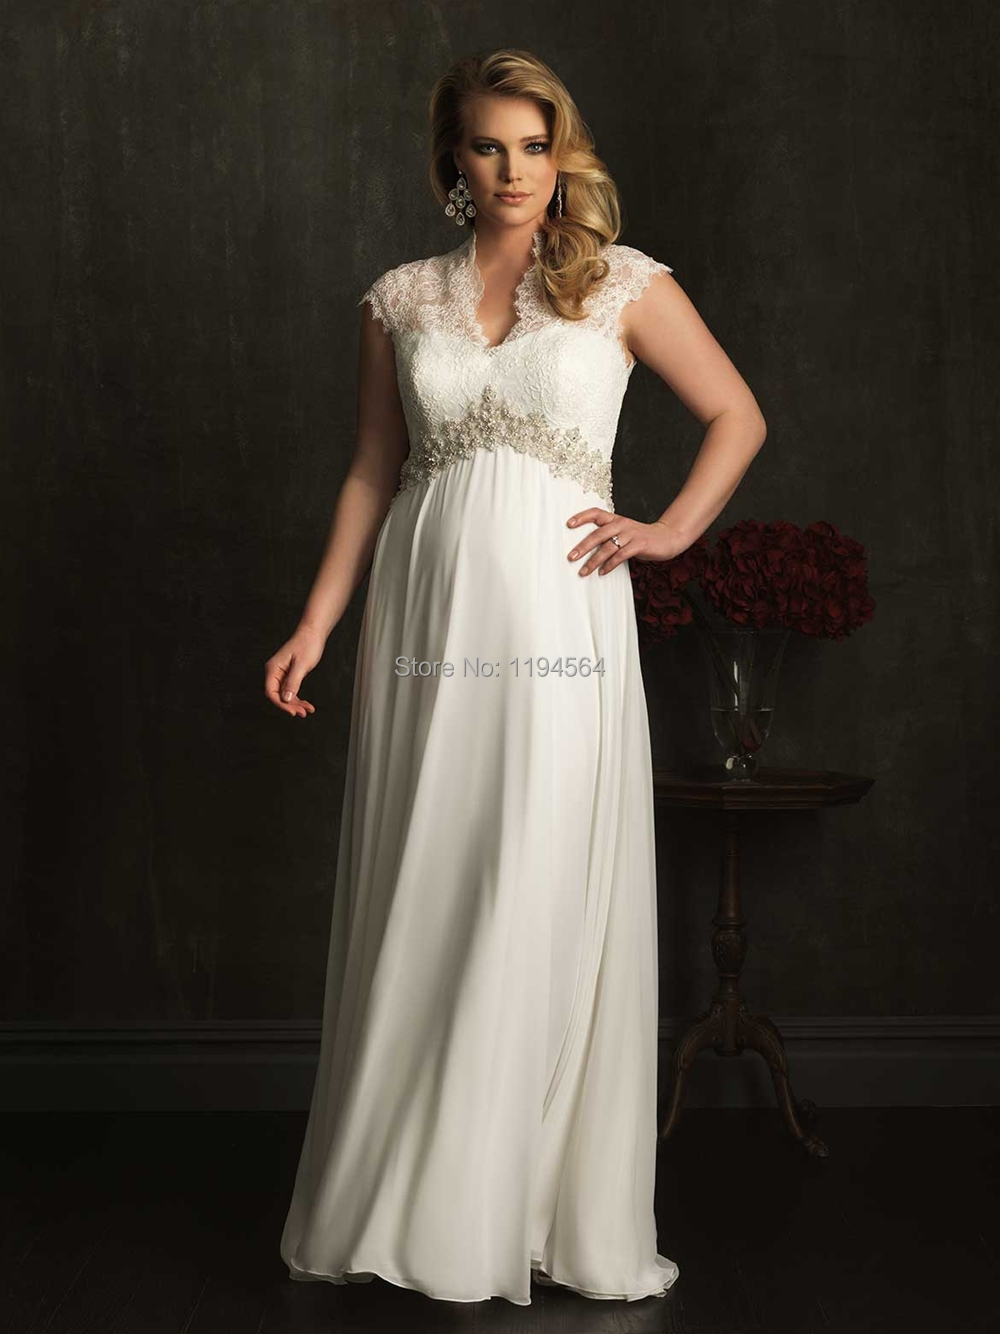 2015 new arrival modest v neck wedding dress plus size for Plus size illusion wedding dress